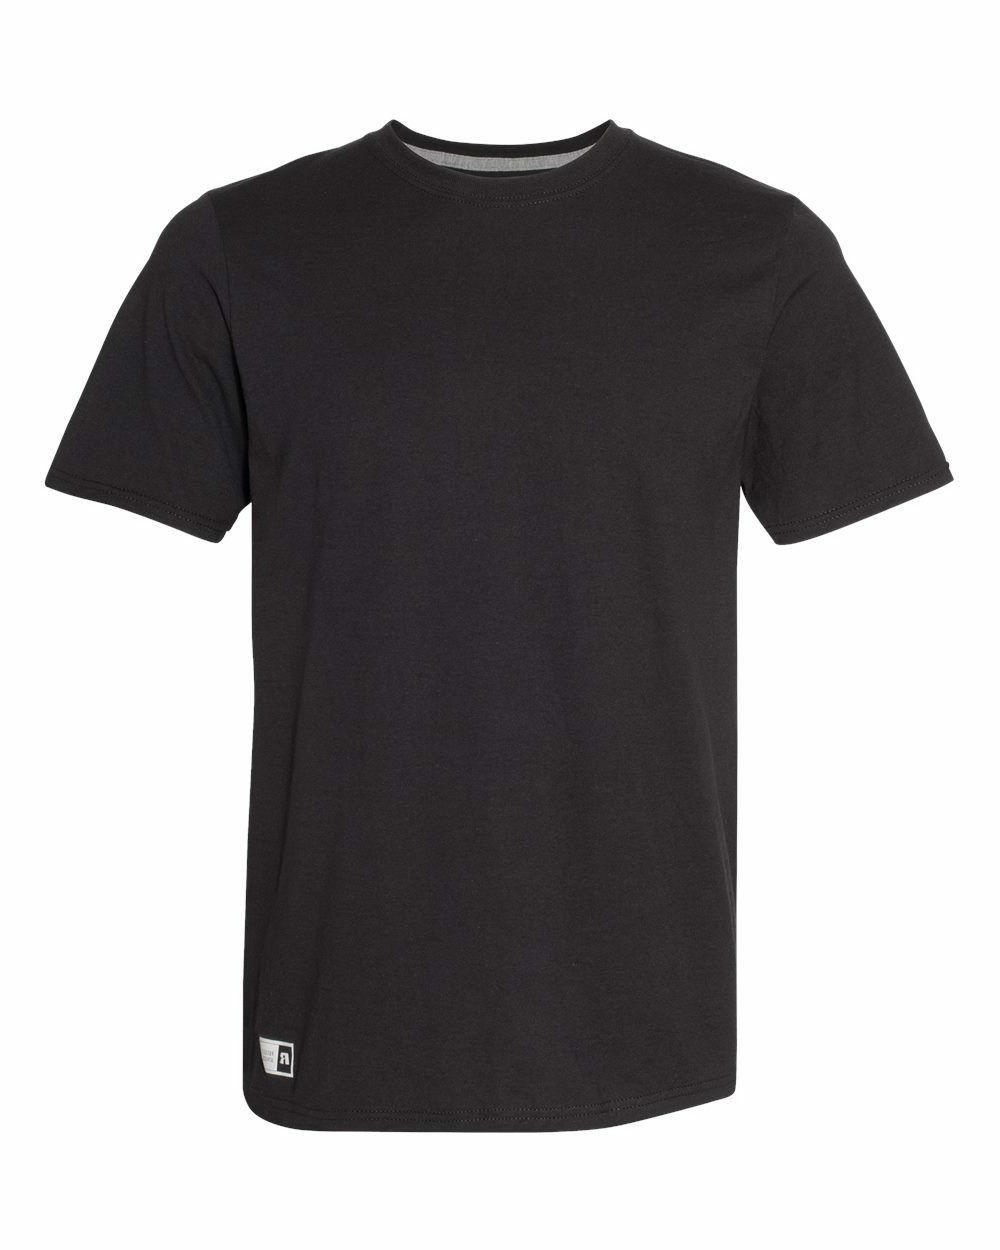 Russell Youth Essential Blend Performance Tee, Sports T-Shirt,